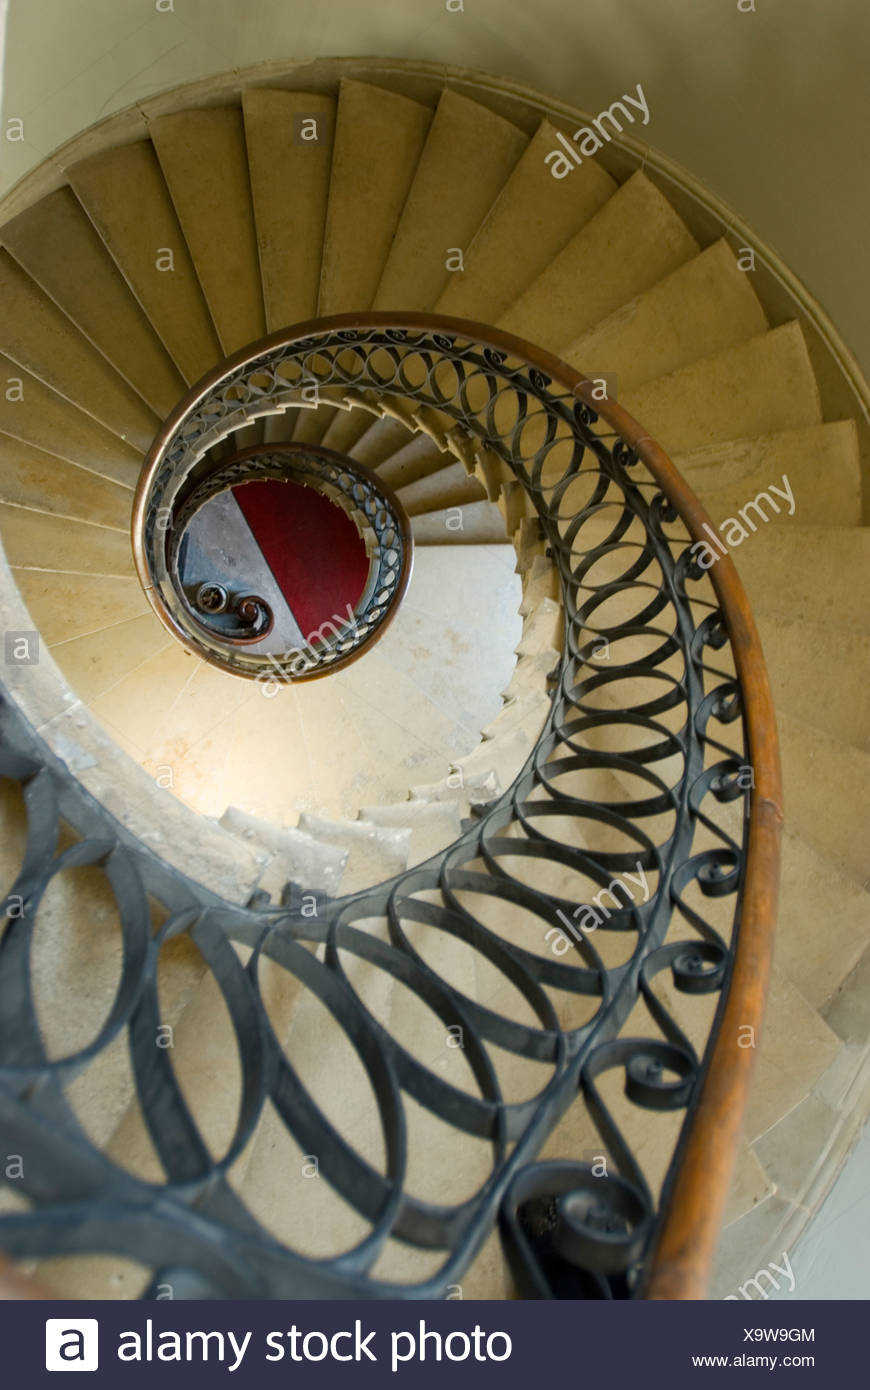 Overview Of Floating Spiral Staircase At The Courthouse In Saint John, New  Brunswick